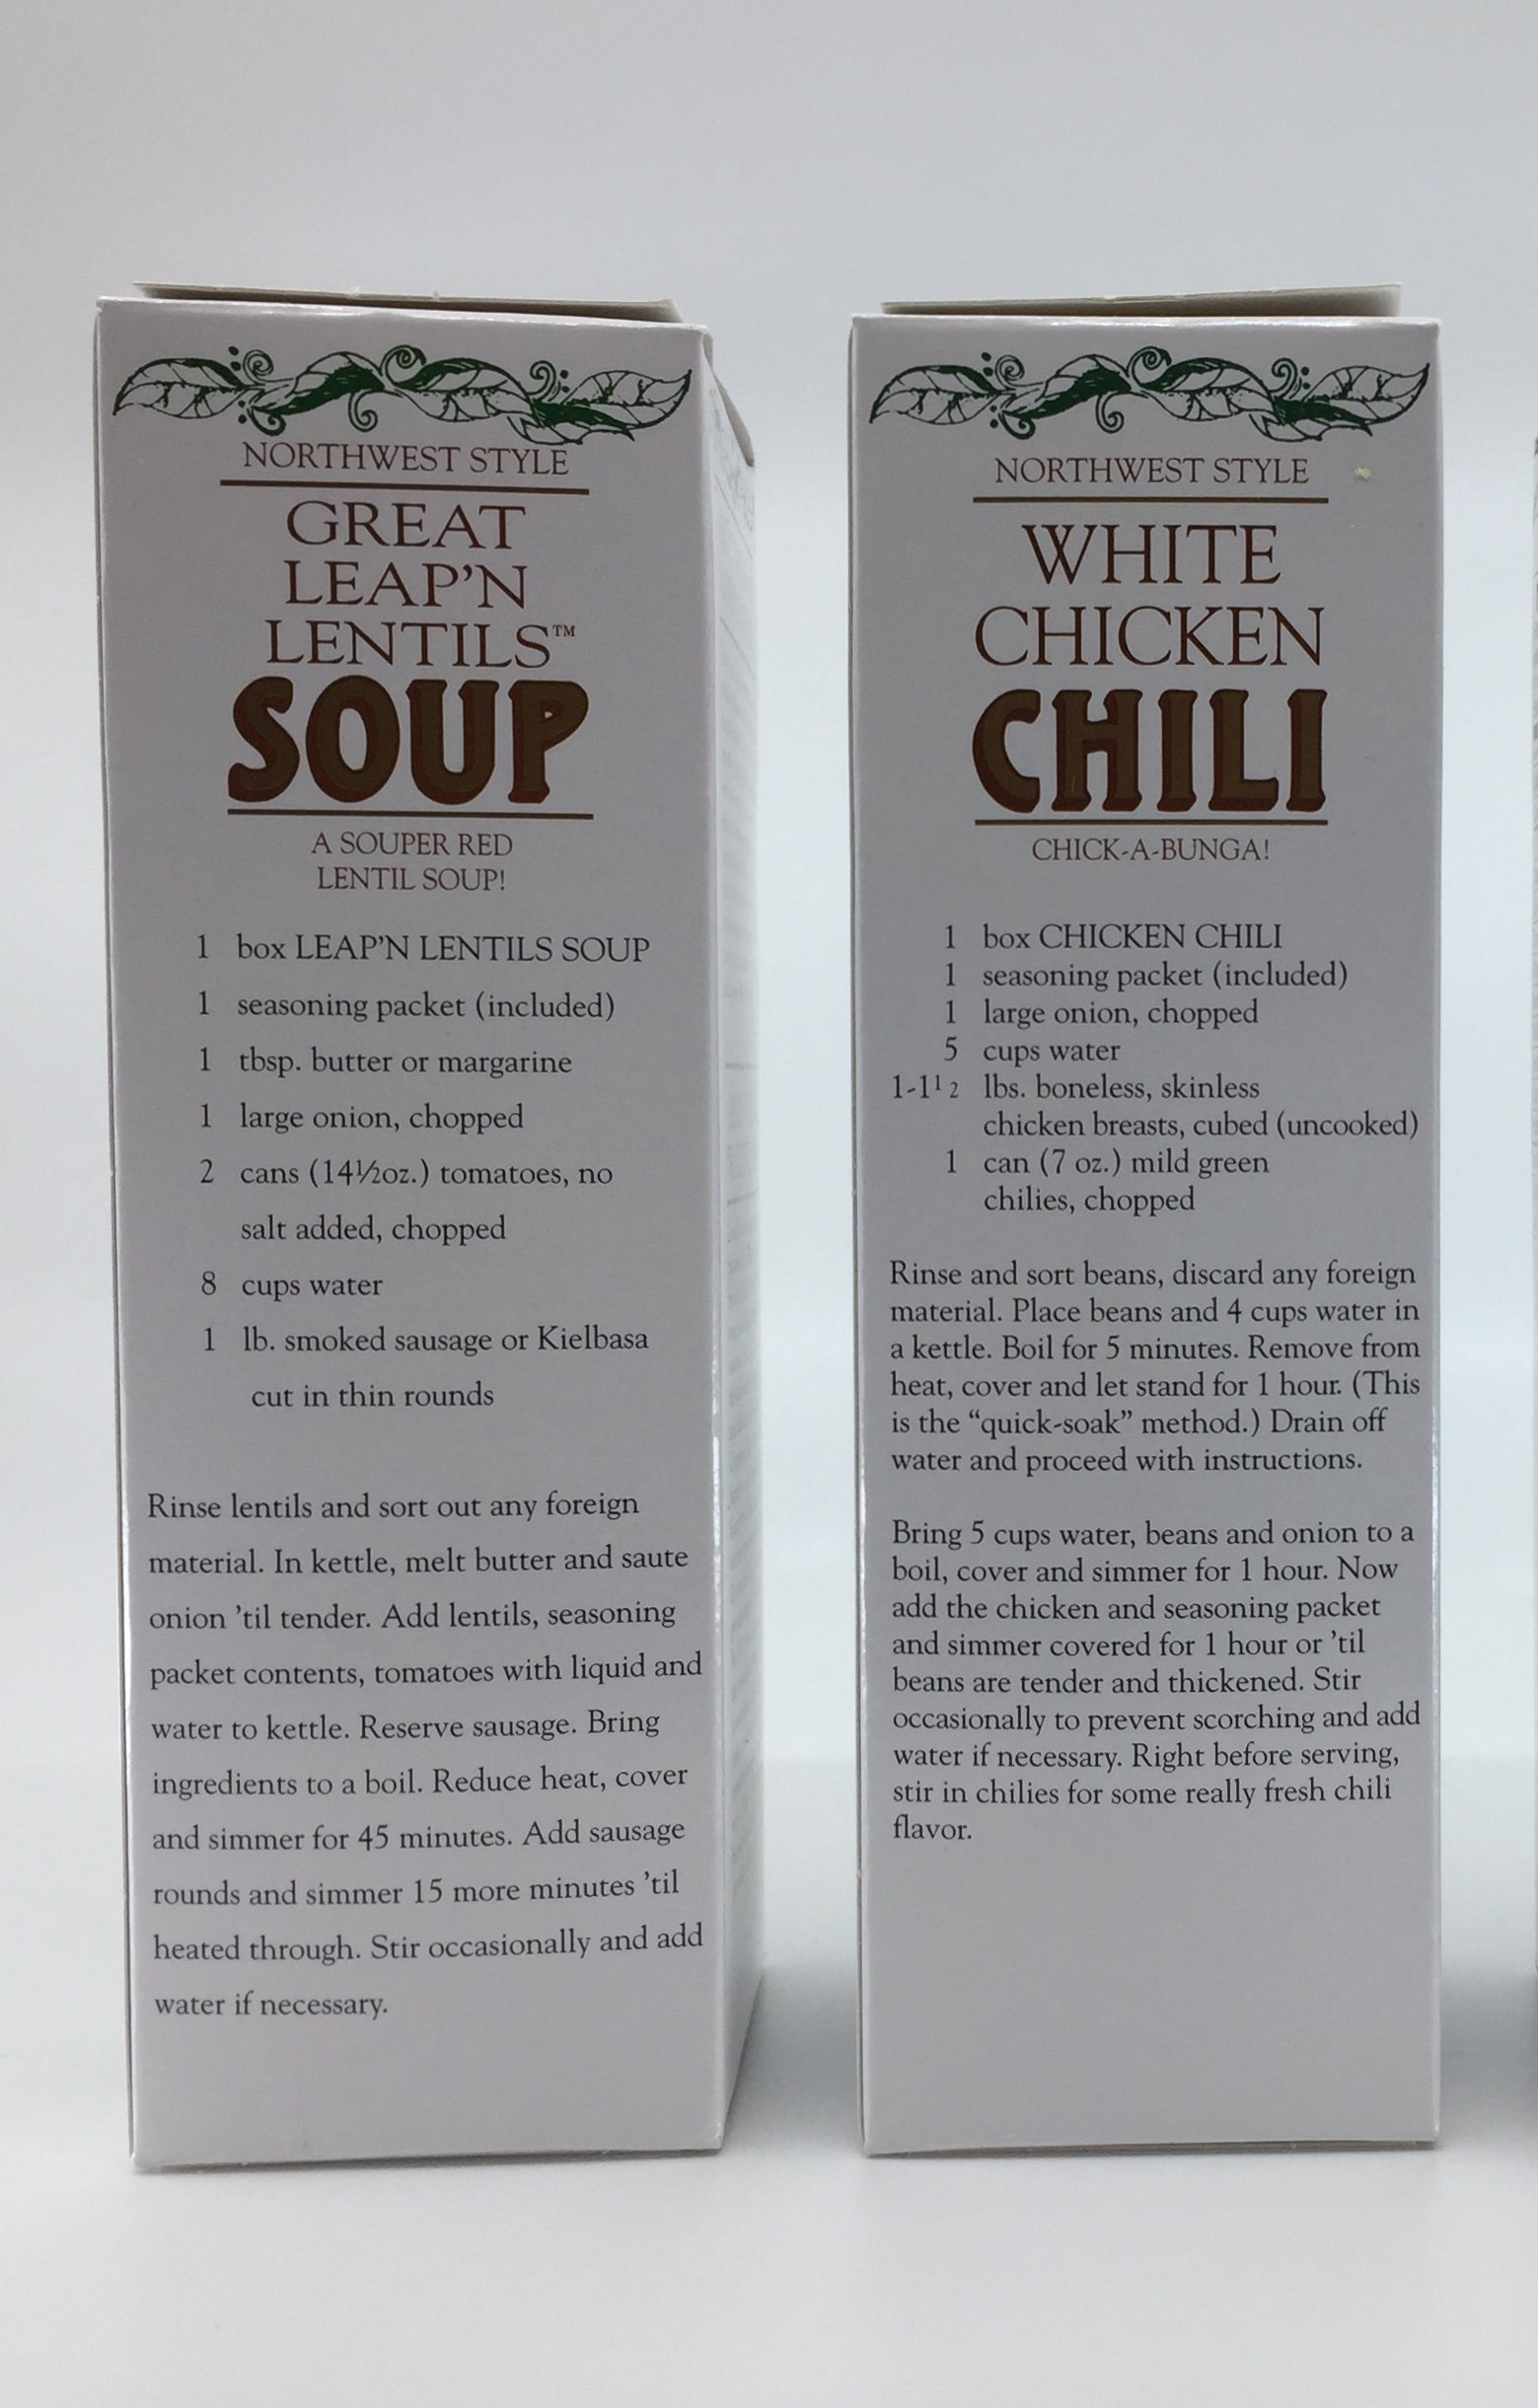 Buckeye Beans & Herbs Soup and Chili Variety of 2: Great Leap'n Lentil and White Chicken Chili – 12-14 Ounces Each (2 Items) by Buckeye Beans & Herbs customs